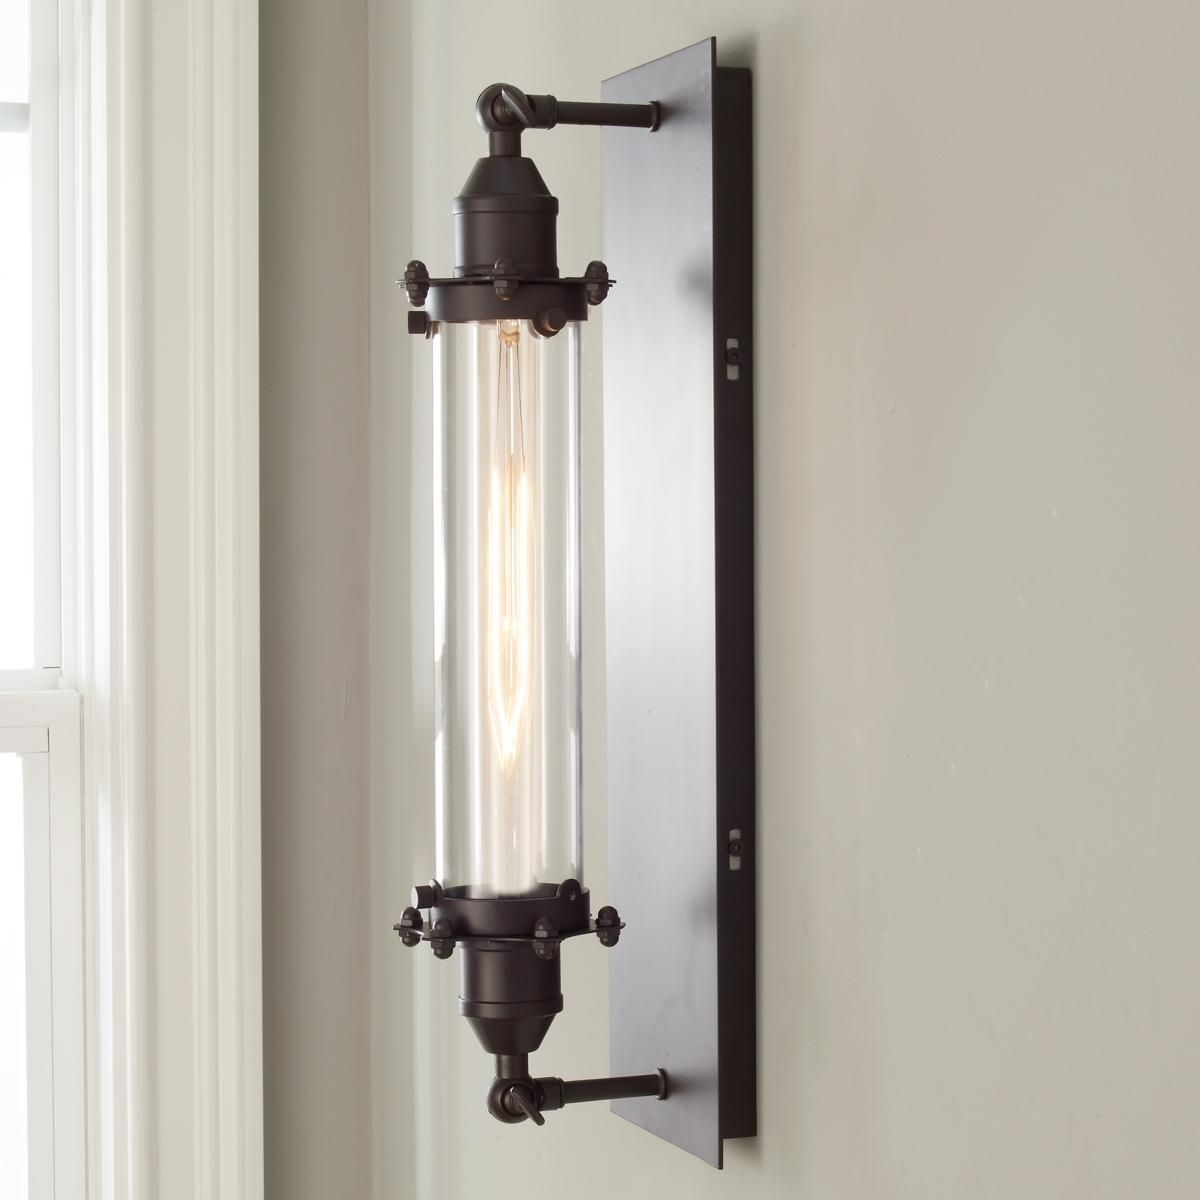 Plated Industrial Bolted Tube Sconce Industrial Lamp Sconces Industrial Wall Sconce